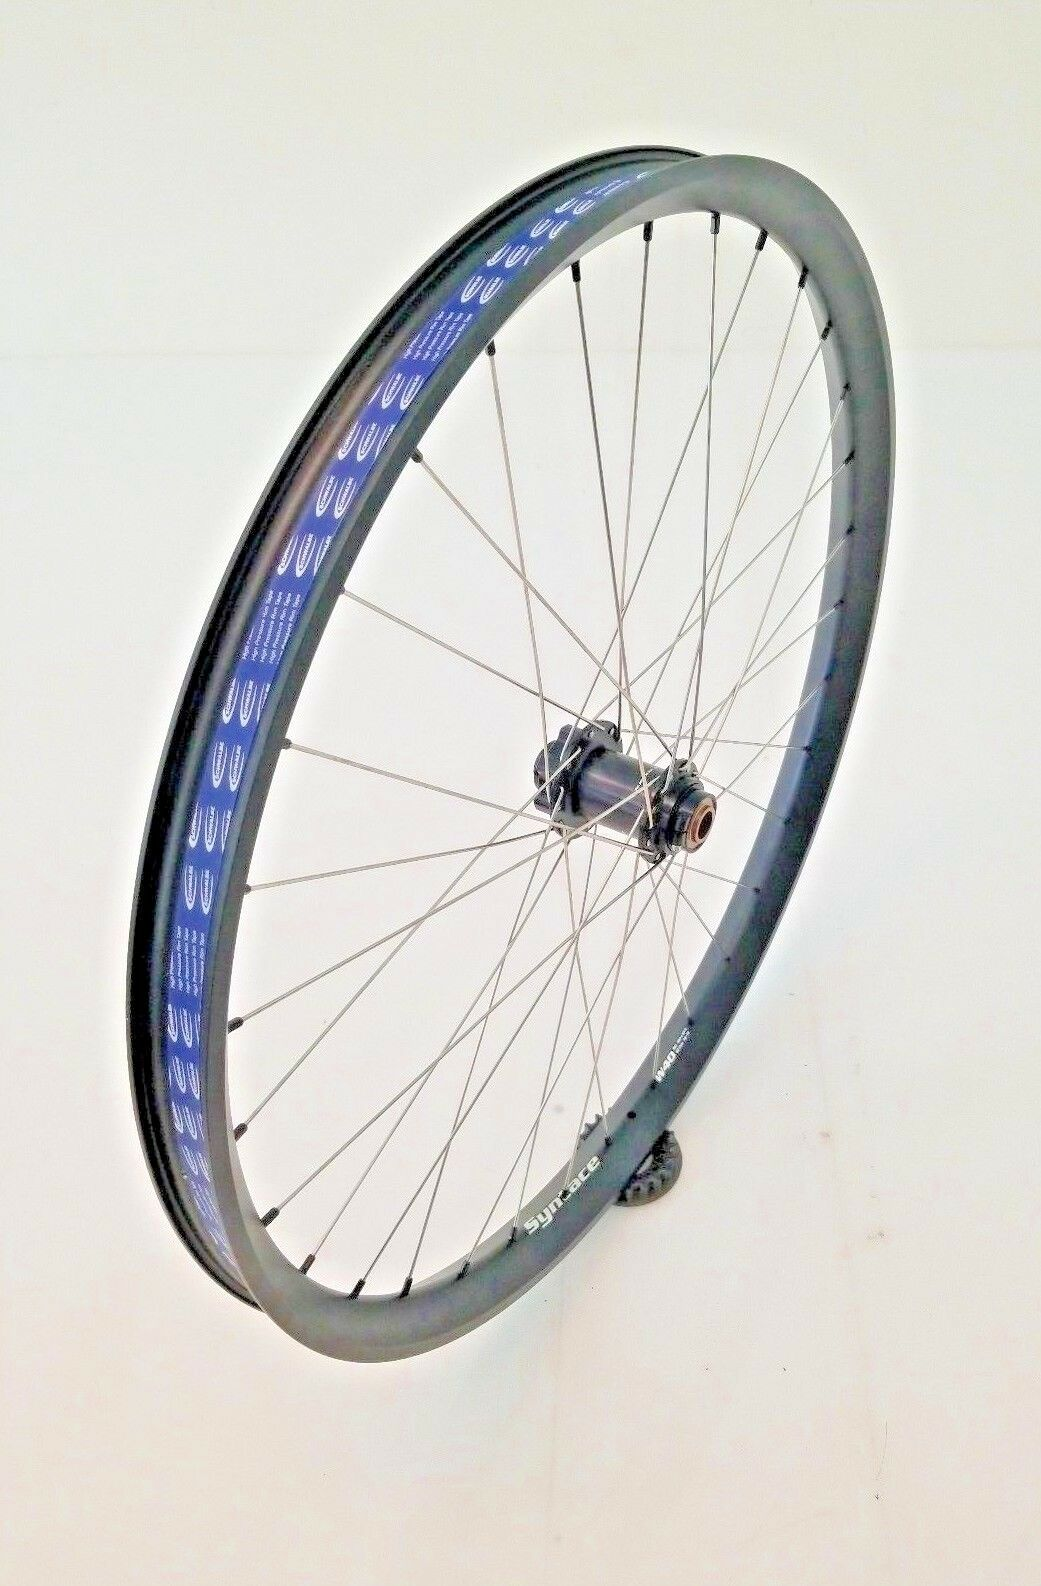 Syntace W40 M 27.5  Front Mountain  Bike Disc Wheel  official authorization